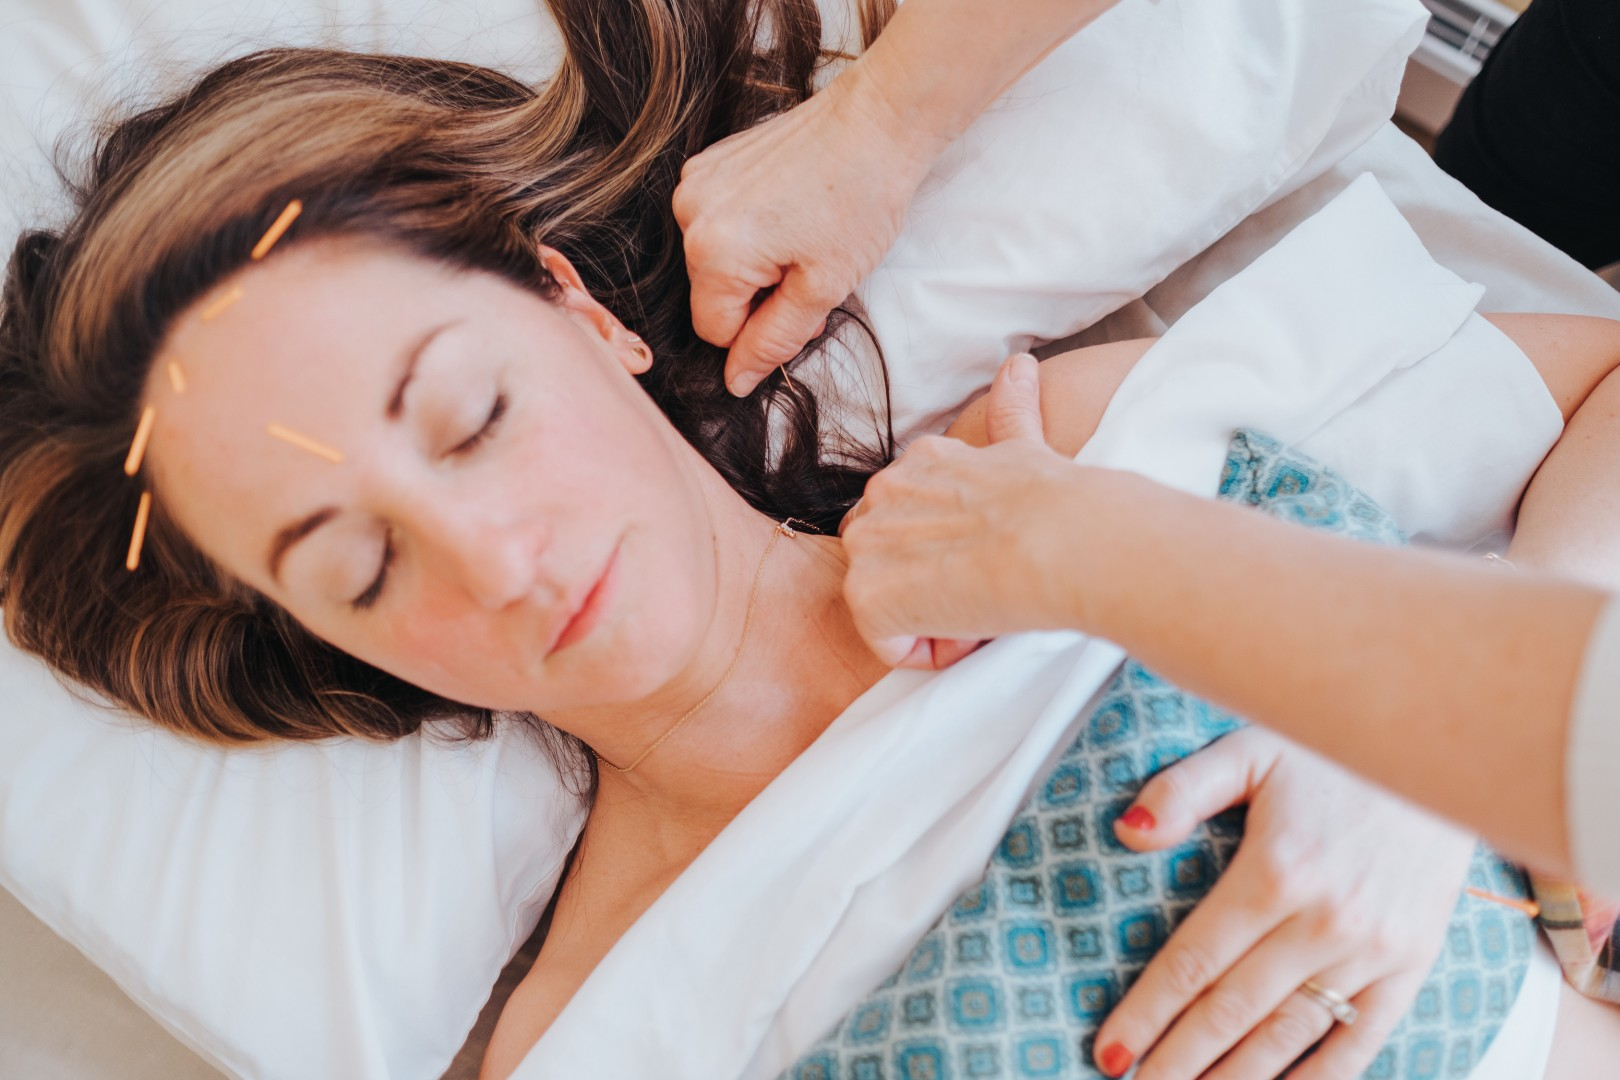 Progressive Healing Institute offers safe, effective Acupuncture in Nanaimo, BC